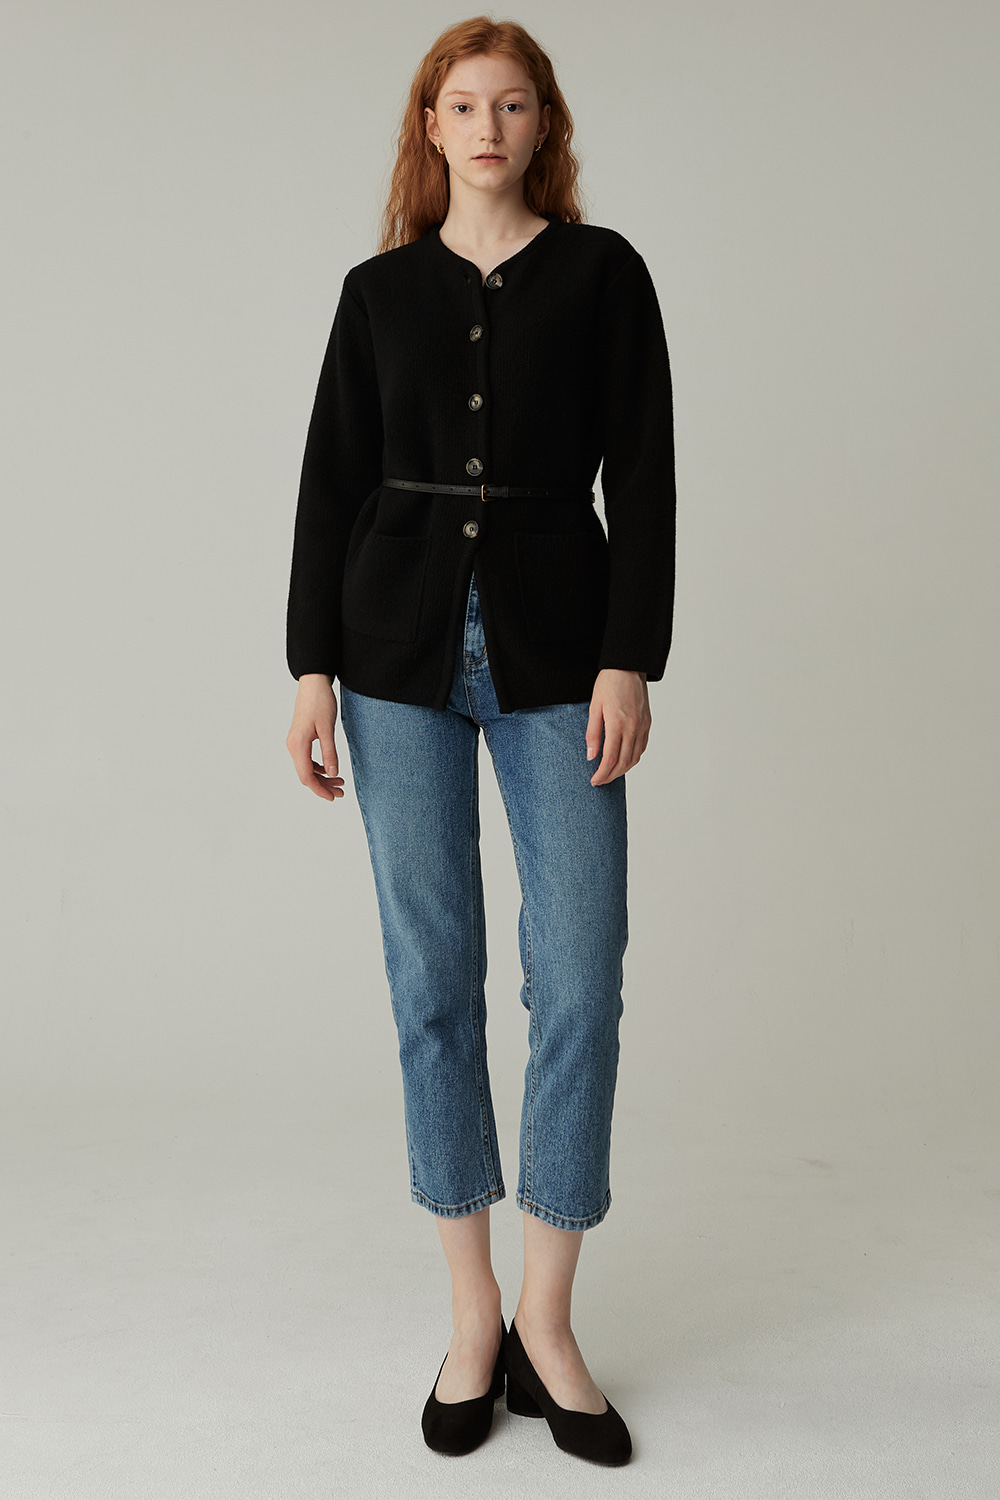 RE-ORDER / TURK WOOL JACKET (BLACK)